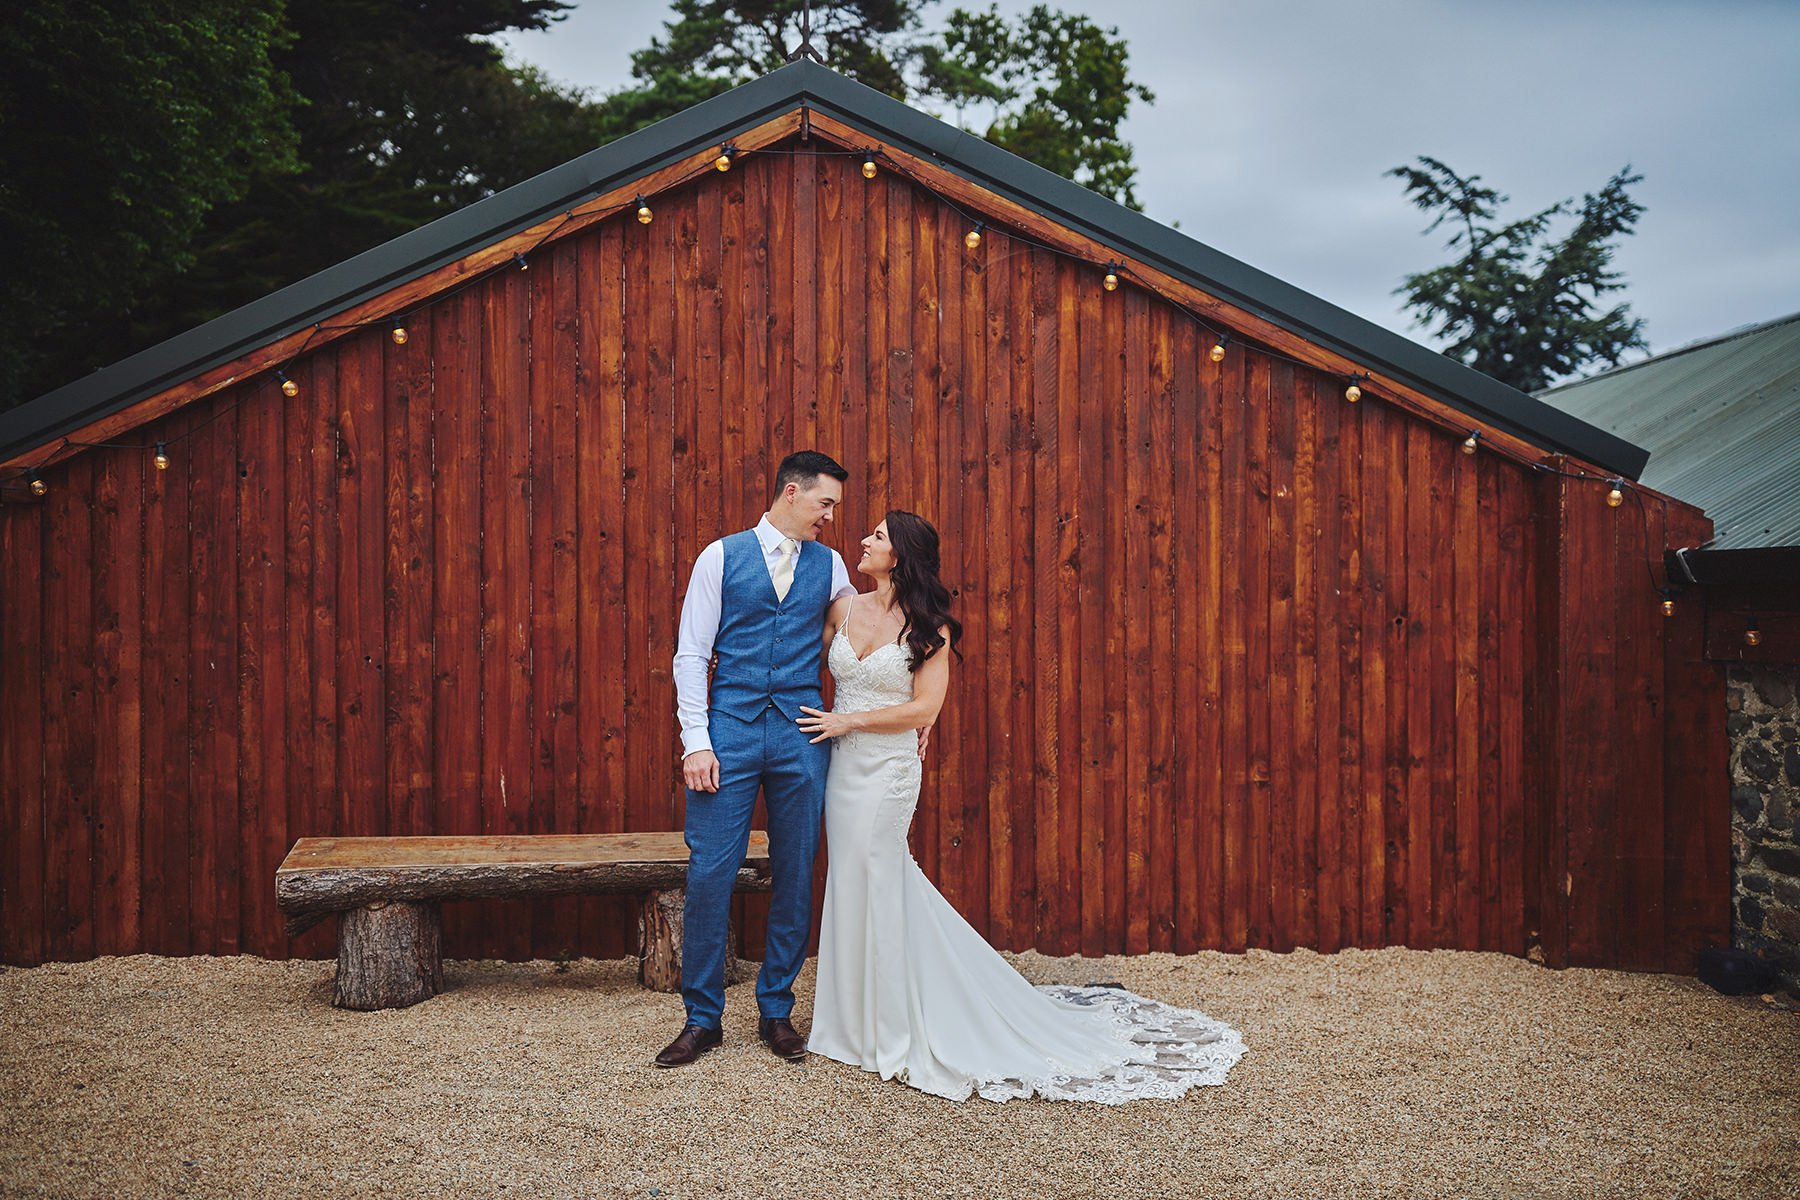 Segrave Barns Dunany. Barn Wedding Ireland 51